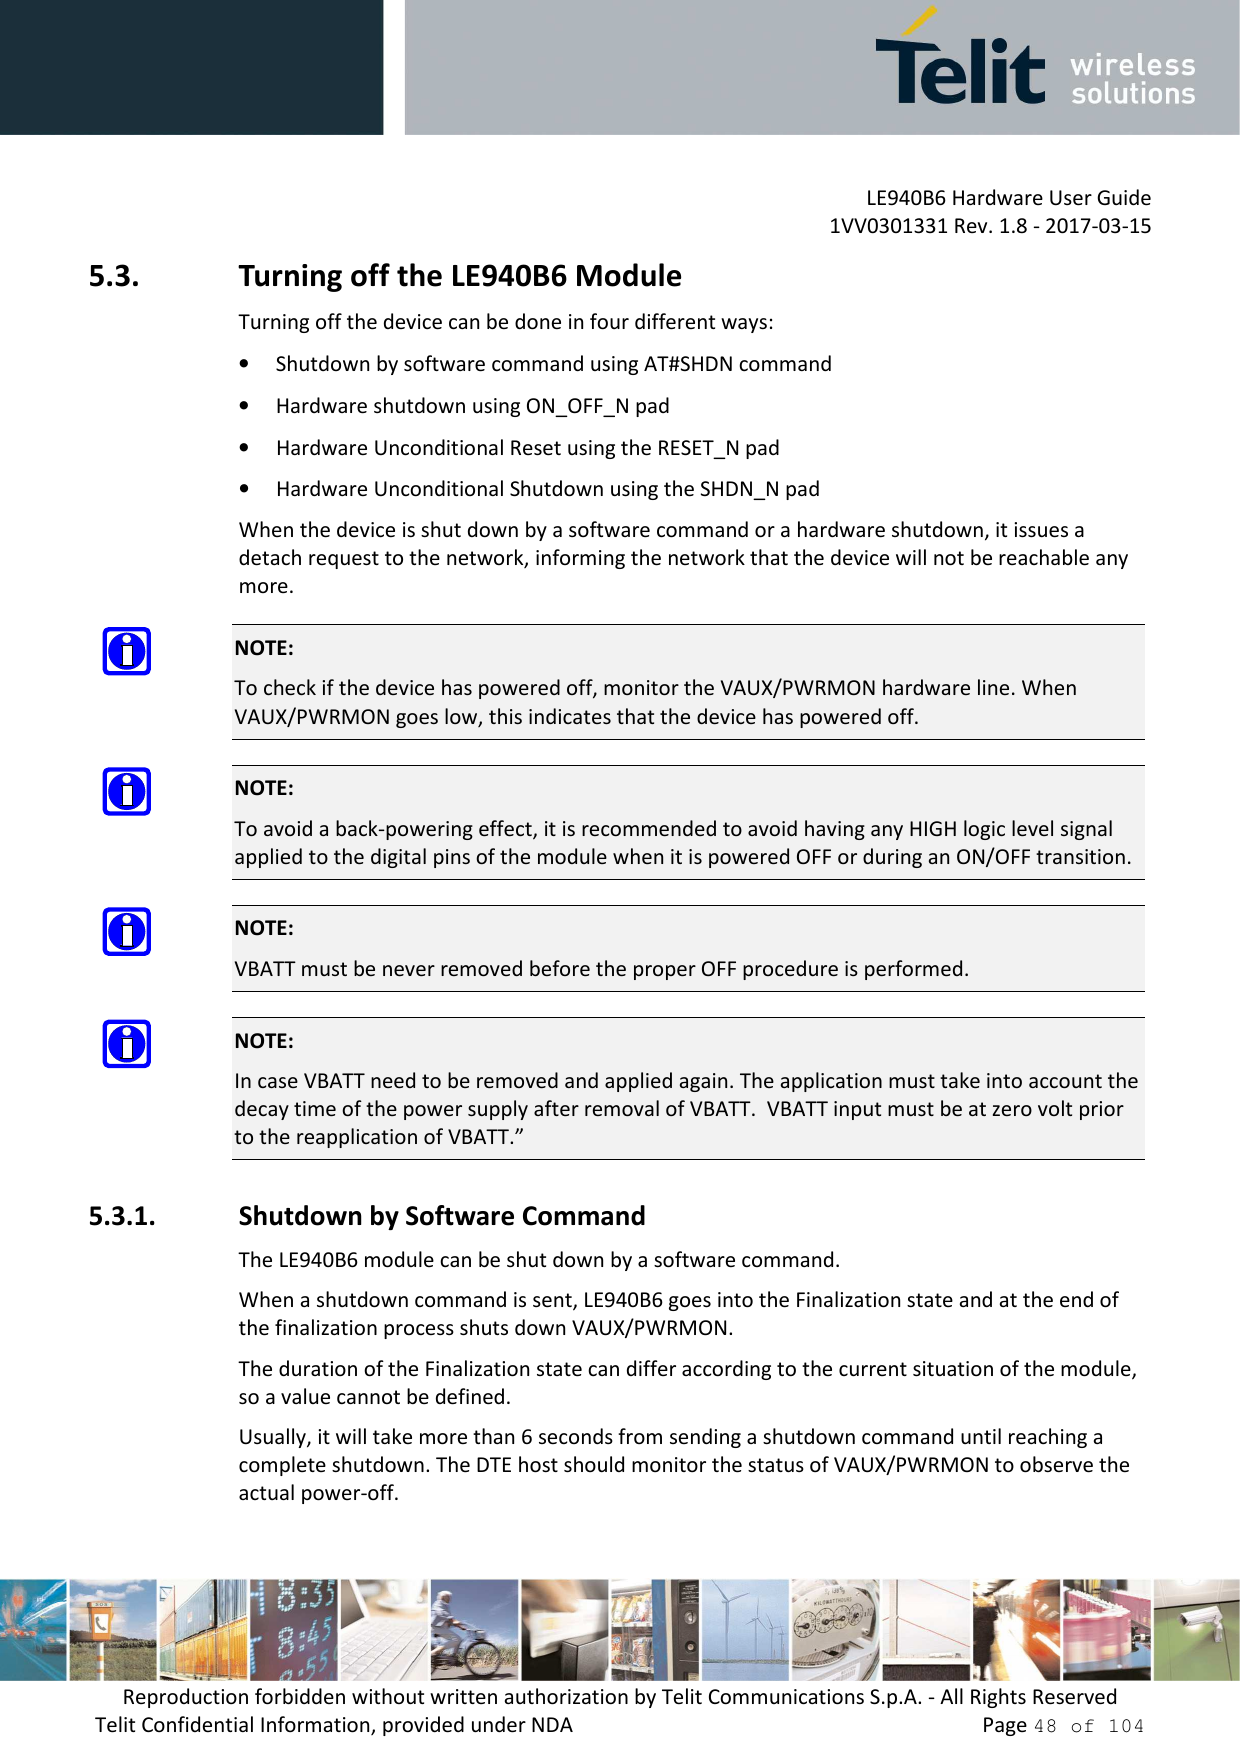 """LE940B6 Hardware User Guide     1VV0301331 Rev. 1.8 - 2017-03-15 Reproduction forbidden without written authorization by Telit Communications S.p.A. - All Rights Reserved Telit Confidential Information, provided under NDA                 Page 48 of 104 5.3. Turning off the LE940B6 Module Turning off the device can be done in four different ways: • Shutdown by software command using AT#SHDN command • Hardware shutdown using ON_OFF_N pad  • Hardware Unconditional Reset using the RESET_N pad • Hardware Unconditional Shutdown using the SHDN_N pad When the device is shut down by a software command or a hardware shutdown, it issues a detach request to the network, informing the network that the device will not be reachable any more.  NOTE: To check if the device has powered off, monitor the VAUX/PWRMON hardware line. When VAUX/PWRMON goes low, this indicates that the device has powered off.  NOTE: To avoid a back-powering effect, it is recommended to avoid having any HIGH logic level signal applied to the digital pins of the module when it is powered OFF or during an ON/OFF transition.  NOTE: VBATT must be never removed before the proper OFF procedure is performed.  NOTE: In case VBATT need to be removed and applied again. The application must take into account the decay time of the power supply after removal of VBATT.  VBATT input must be at zero volt prior to the reapplication of VBATT."""" 5.3.1. Shutdown by Software Command The LE940B6 module can be shut down by a software command. When a shutdown command is sent, LE940B6 goes into the Finalization state and at the end of the finalization process shuts down VAUX/PWRMON. The duration of the Finalization state can differ according to the current situation of the module, so a value cannot be defined. Usually, it will take more than 6 seconds from sending a shutdown command until reaching a complete shutdown. The DTE host should monitor the status of VAUX/PWRMON to observe the actual power-off."""